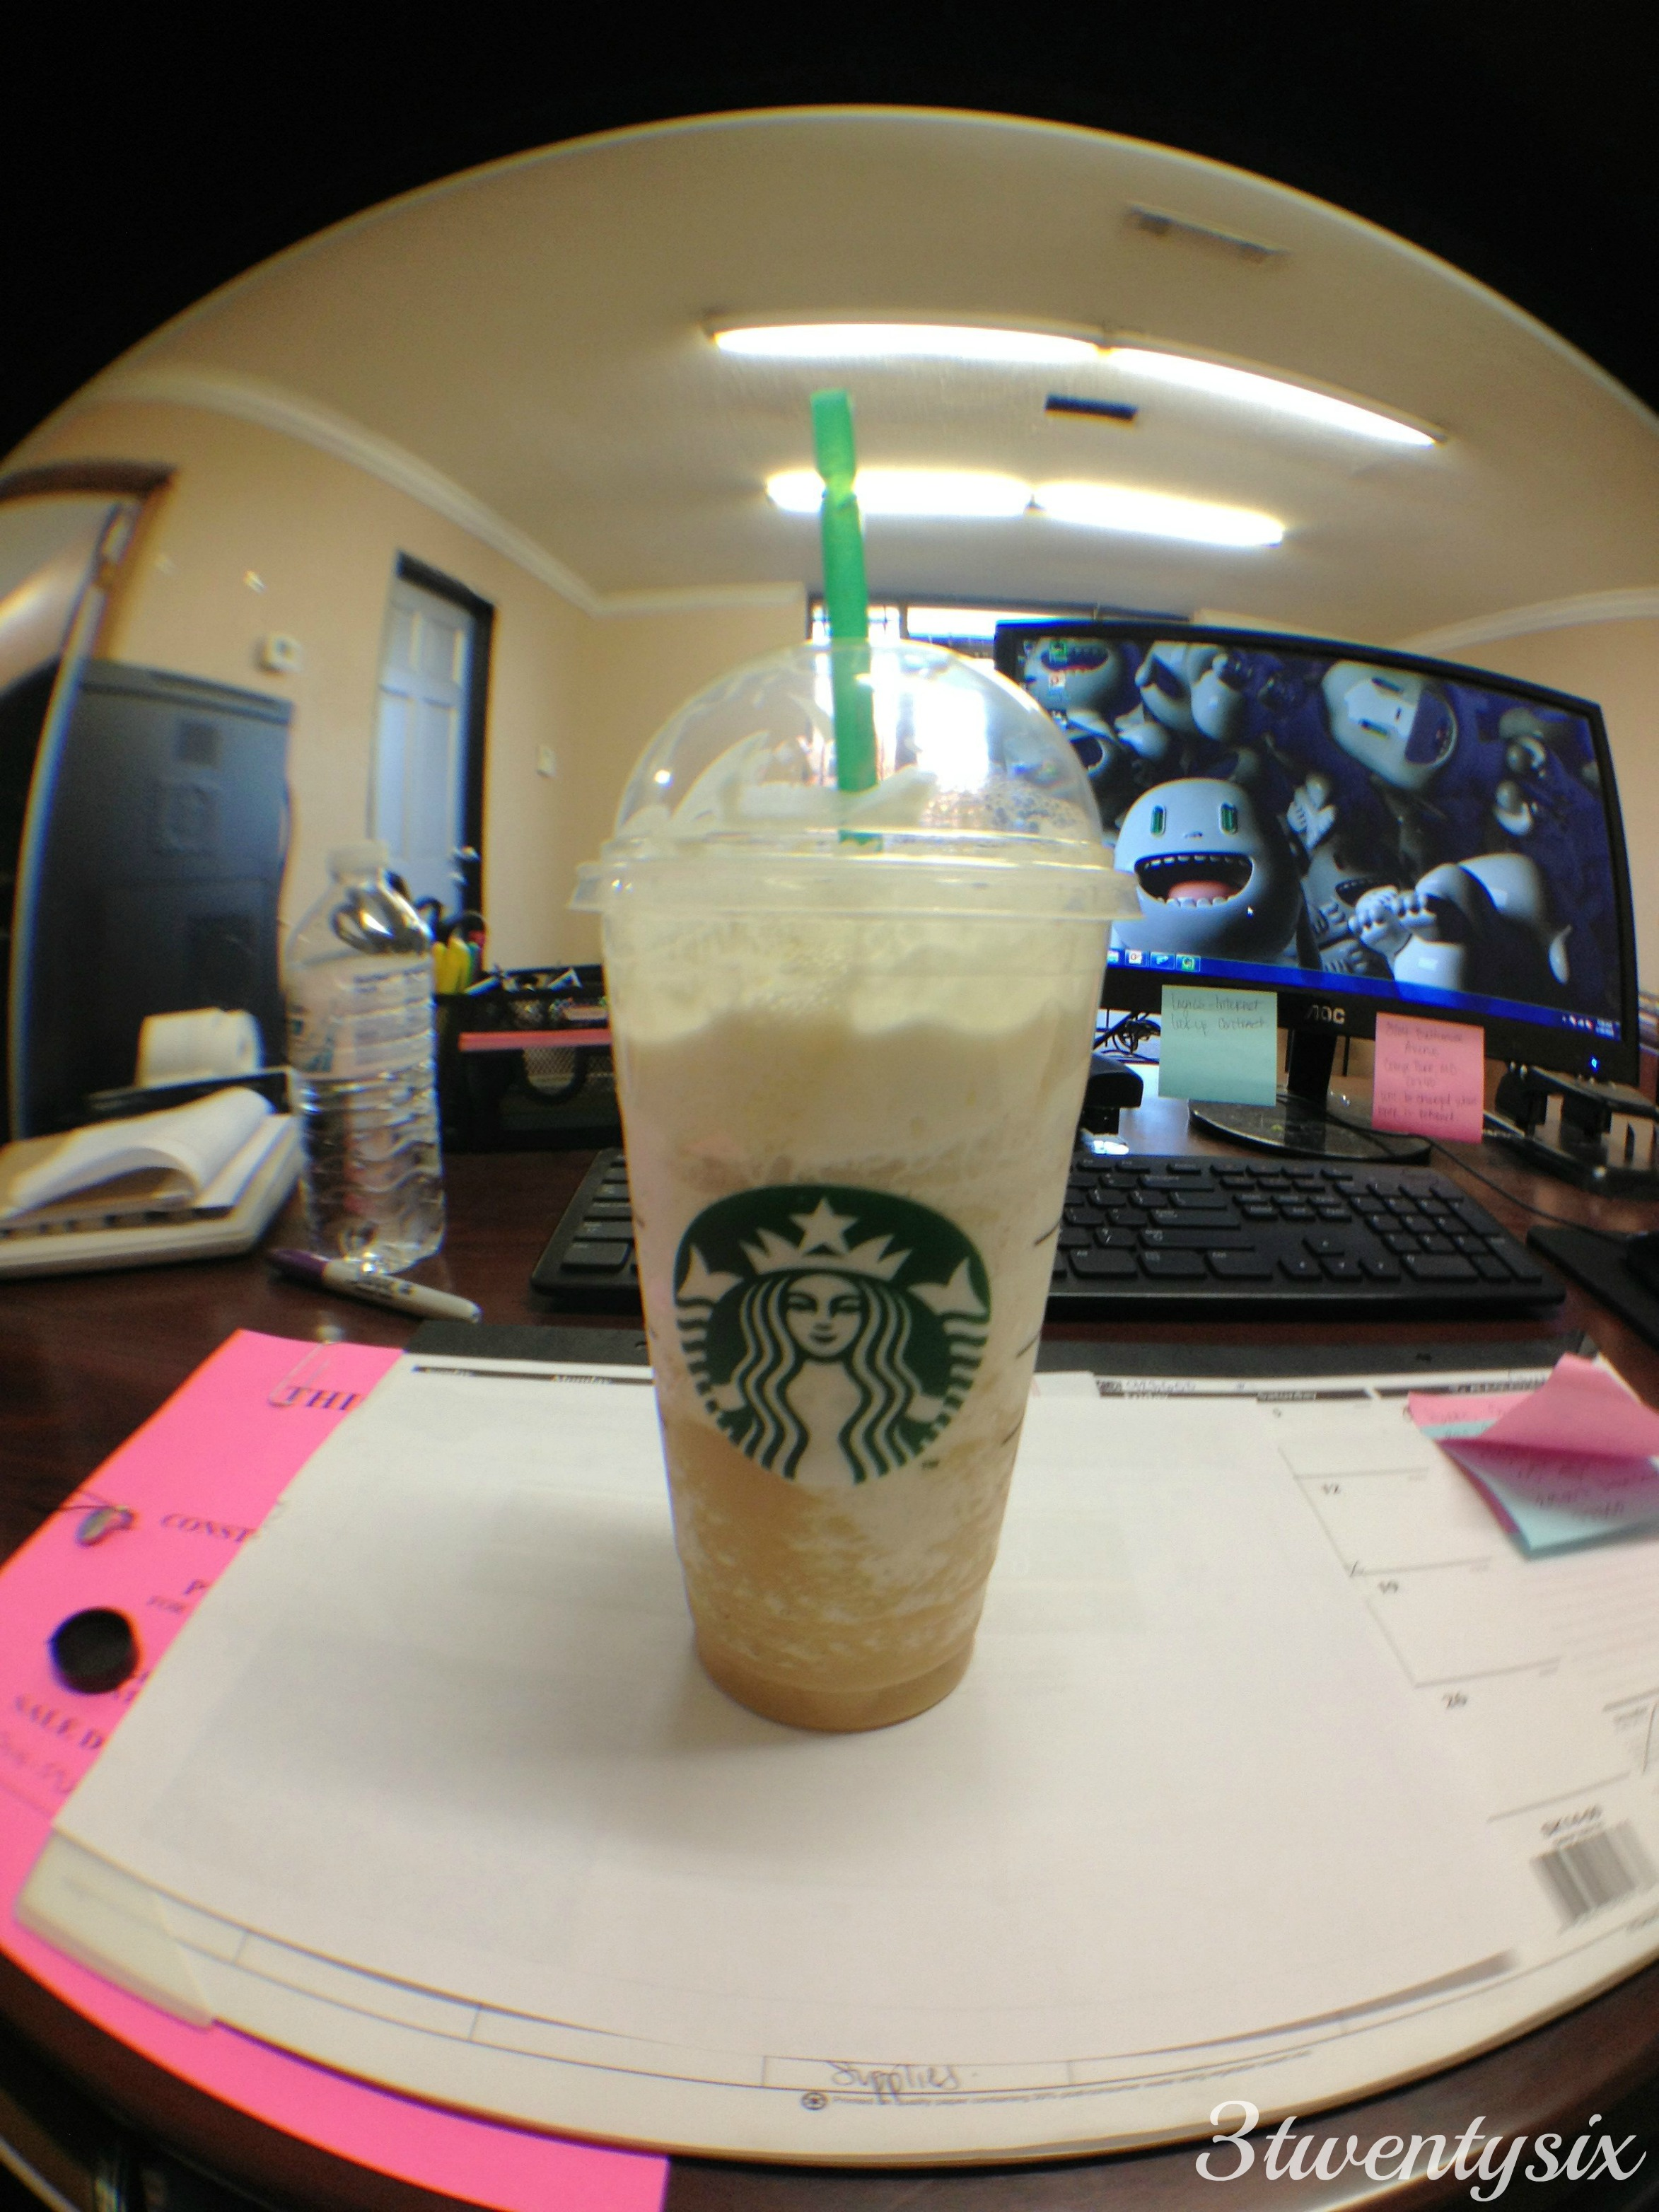 Vanilla Frapp from Starbucks saved me today.